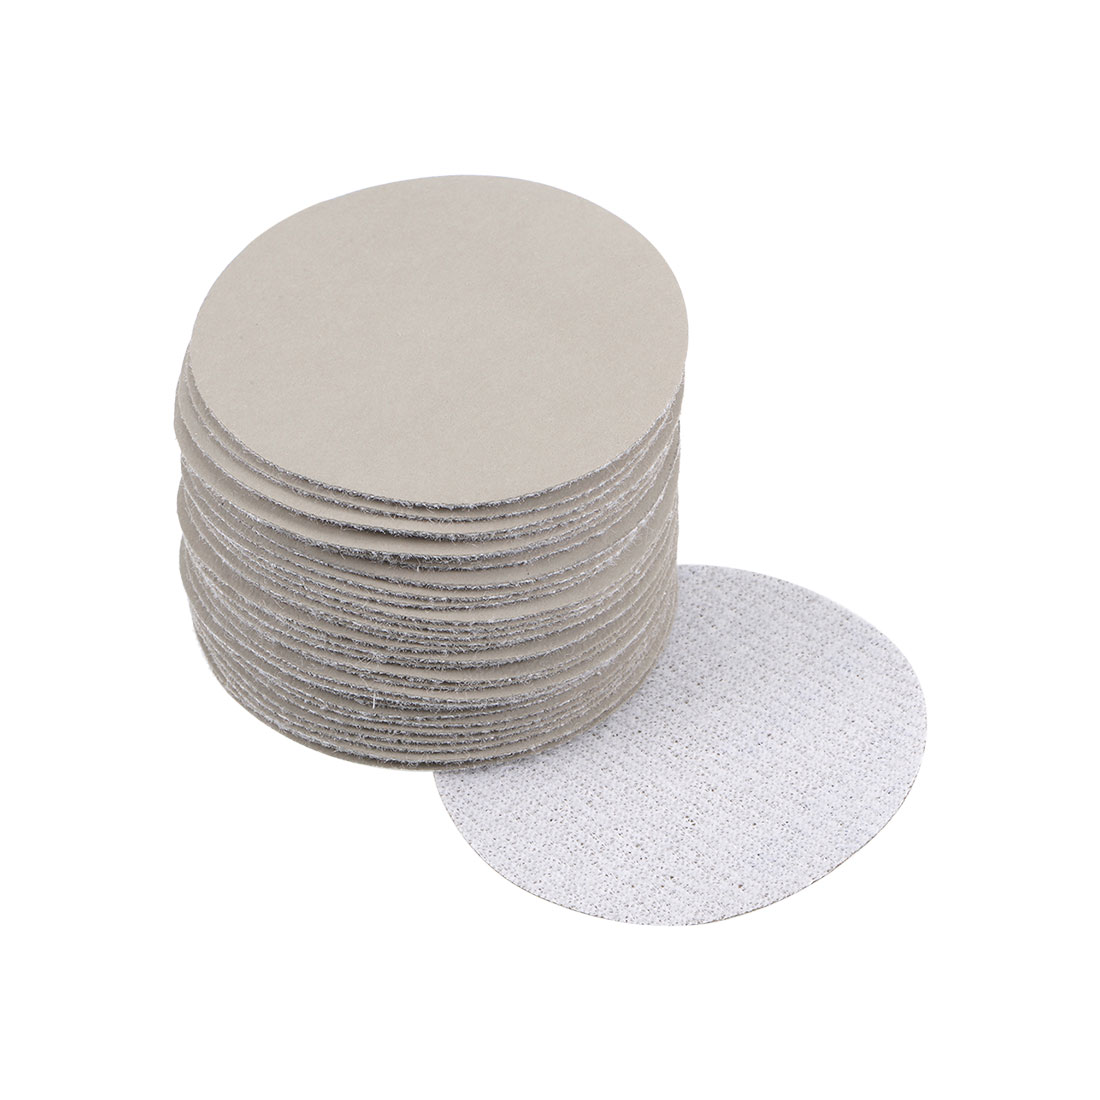 2 inch Wet Dry Discs 5000 Grit Hook and Loop Sanding Disc Silicon Carbide 30pcs